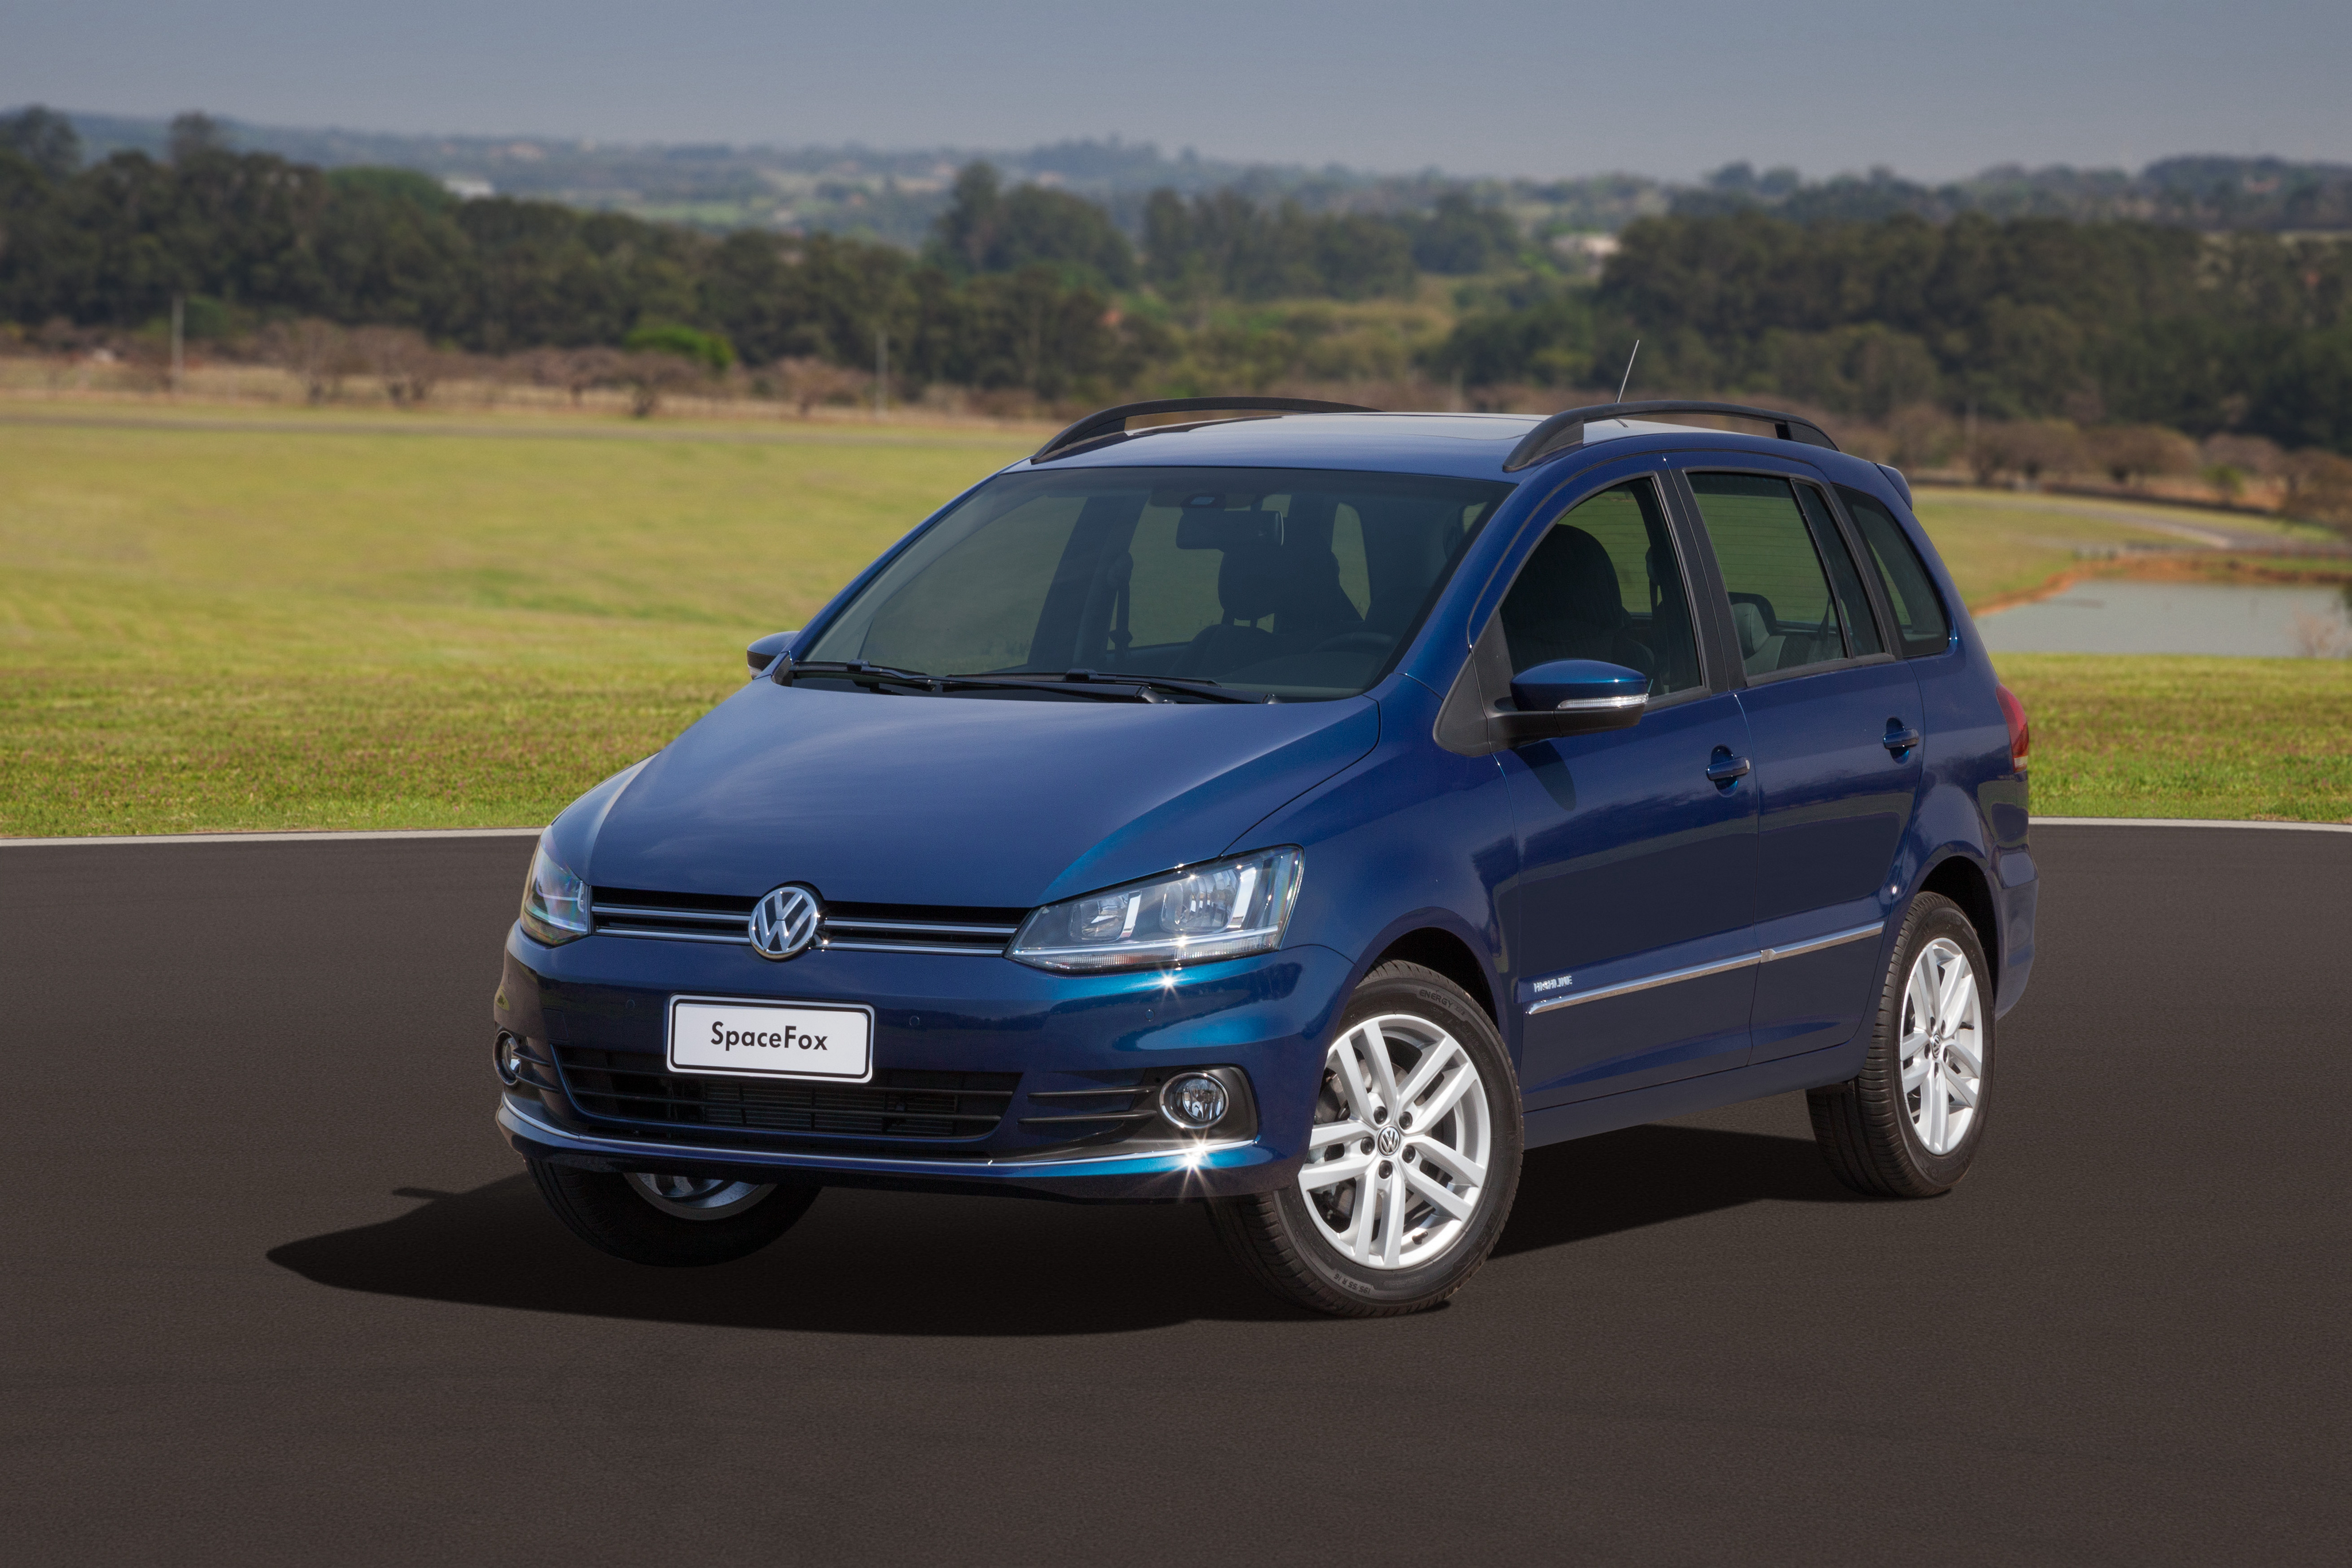 Volkswagen SpaceFox Highline